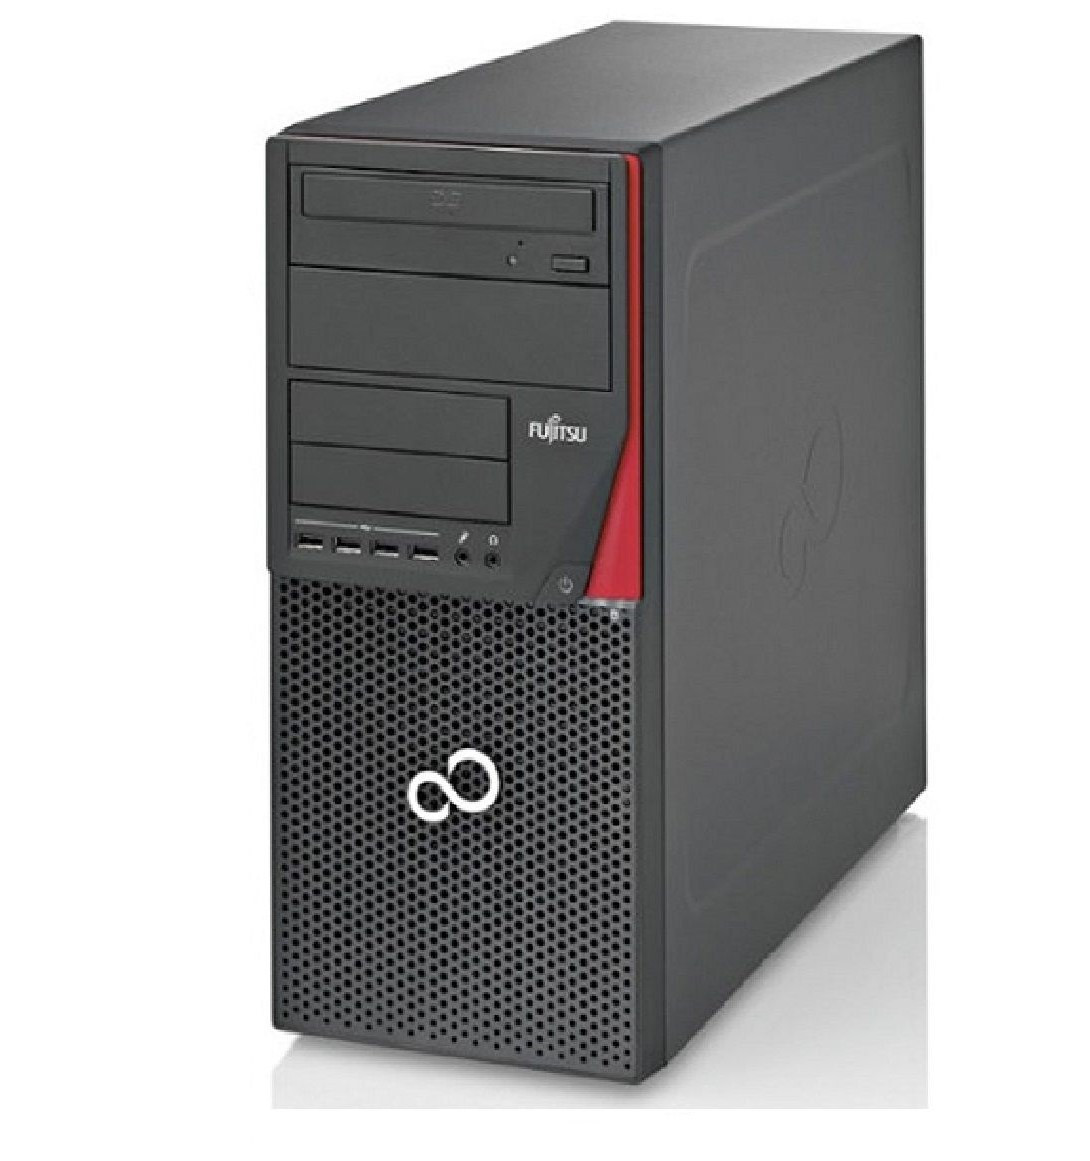 Системный блок Fujitsu ESPRIMO P720-MT-Intel-Core-i5-4590-3,3GHz-8Gb-DDR3-HDD-500Gb-DVD-R- Б/У